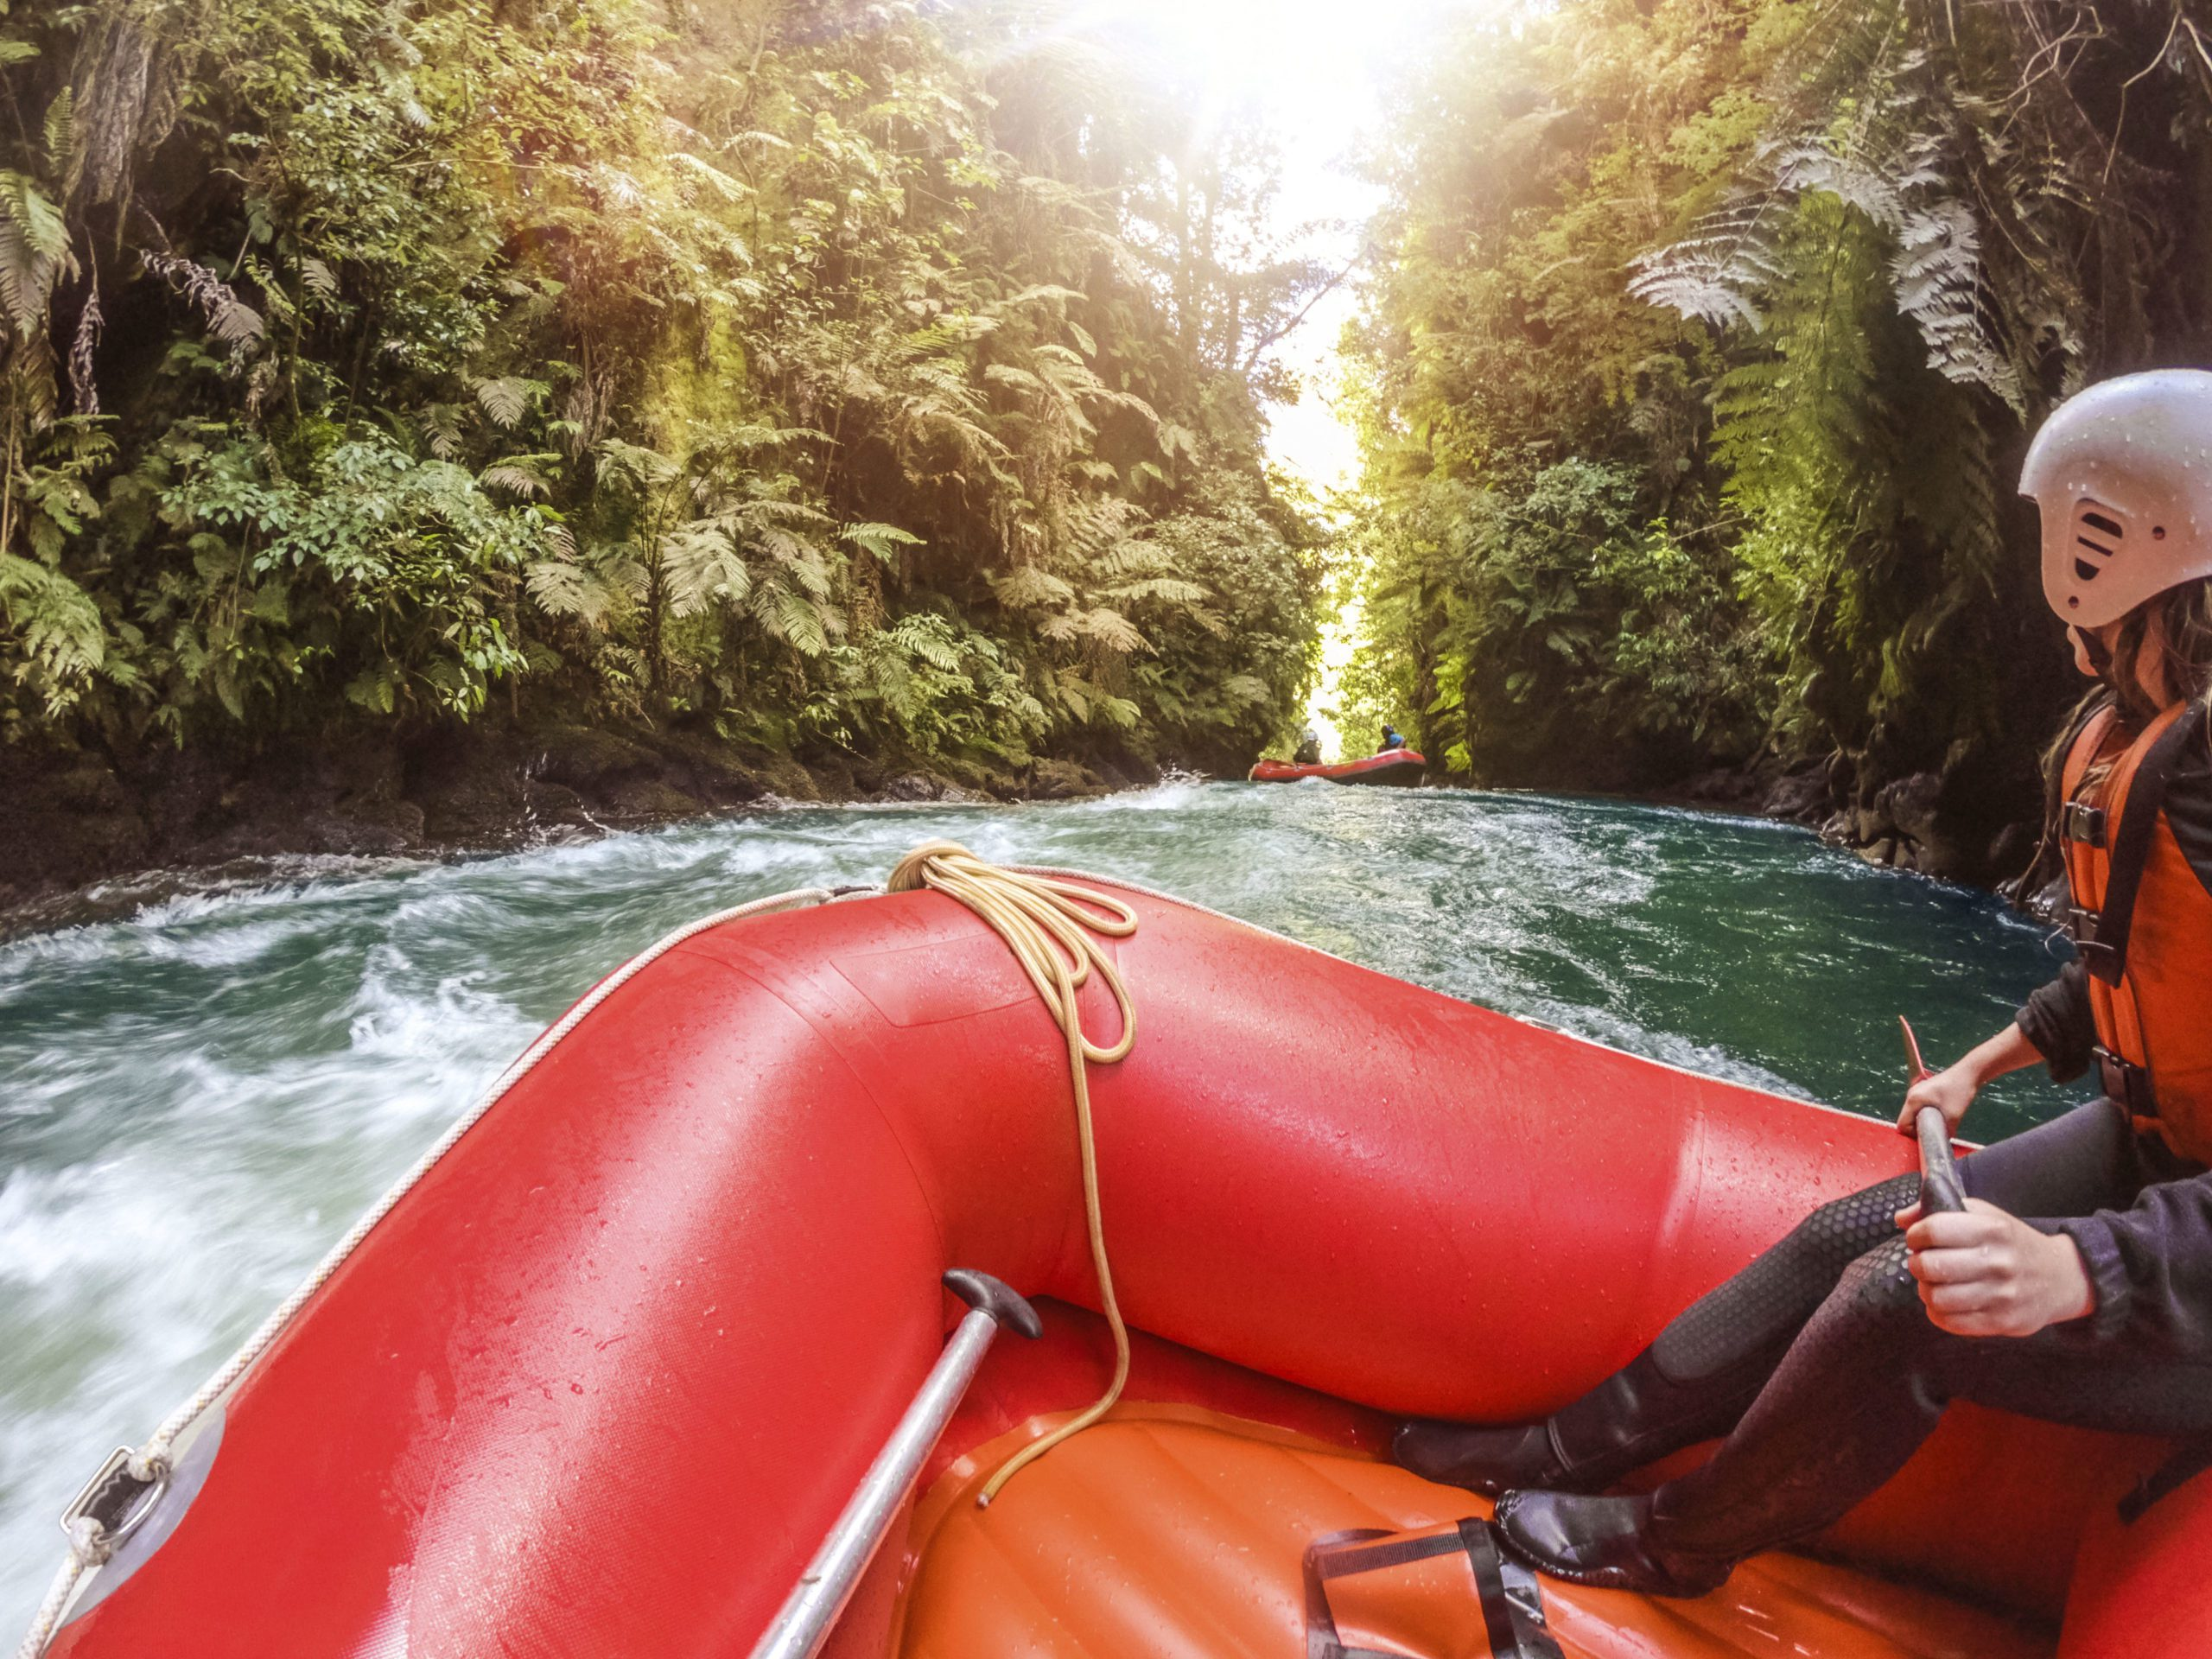 Woman on the front of a whitewater raft on the Kaituna River in Rotorua